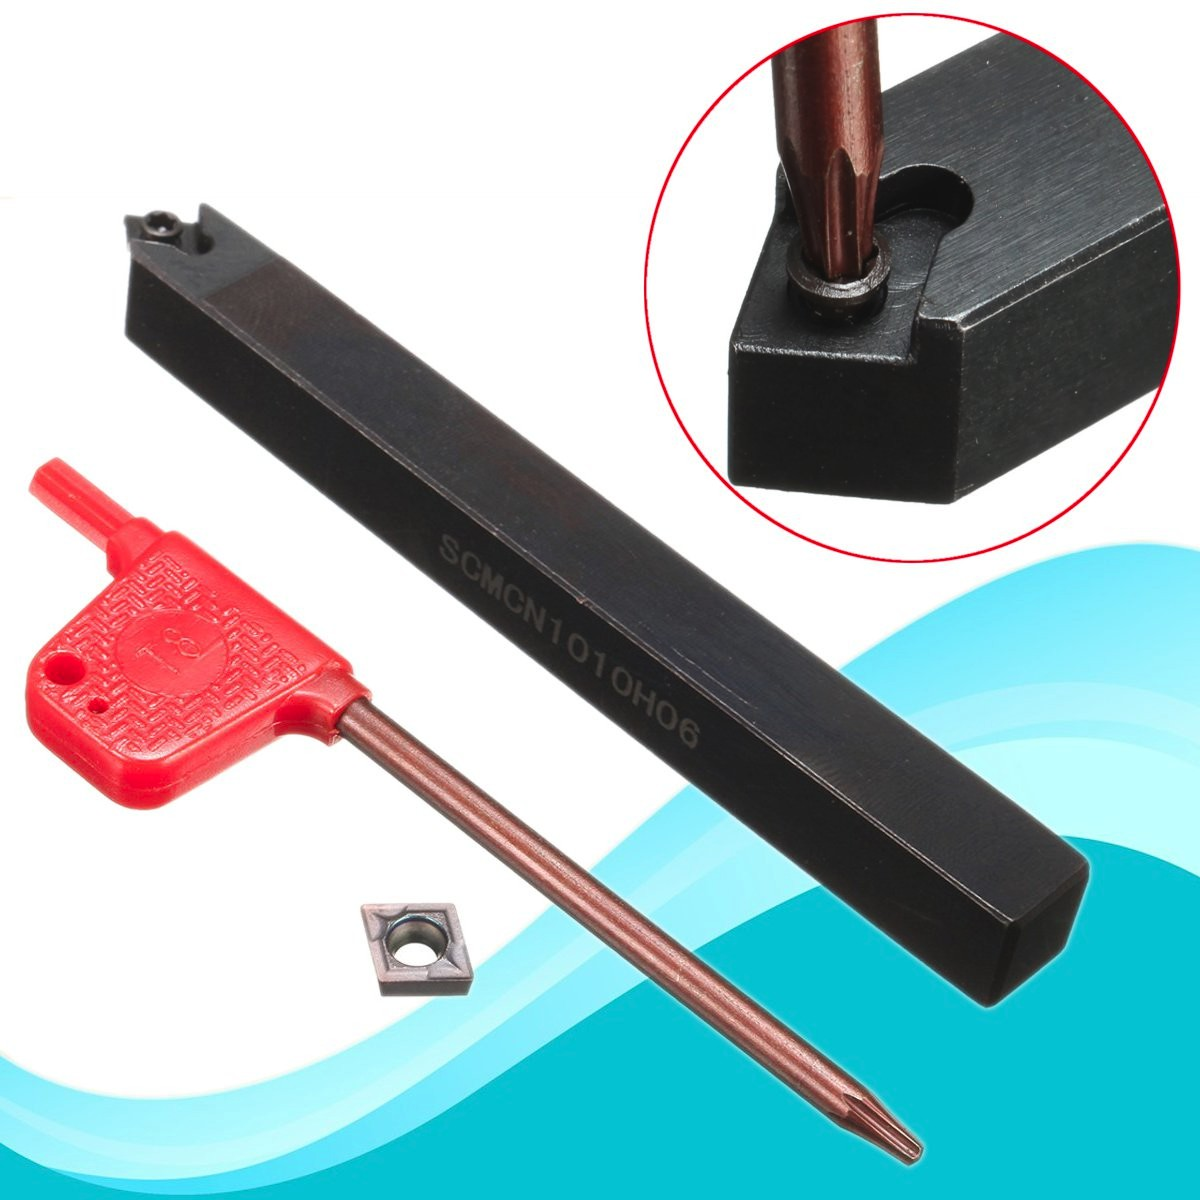 1Set SCMCN1010H06 Lathe Turning Boring Tool Holder 10mm With CCMT060204 Insert + T8 Wrench